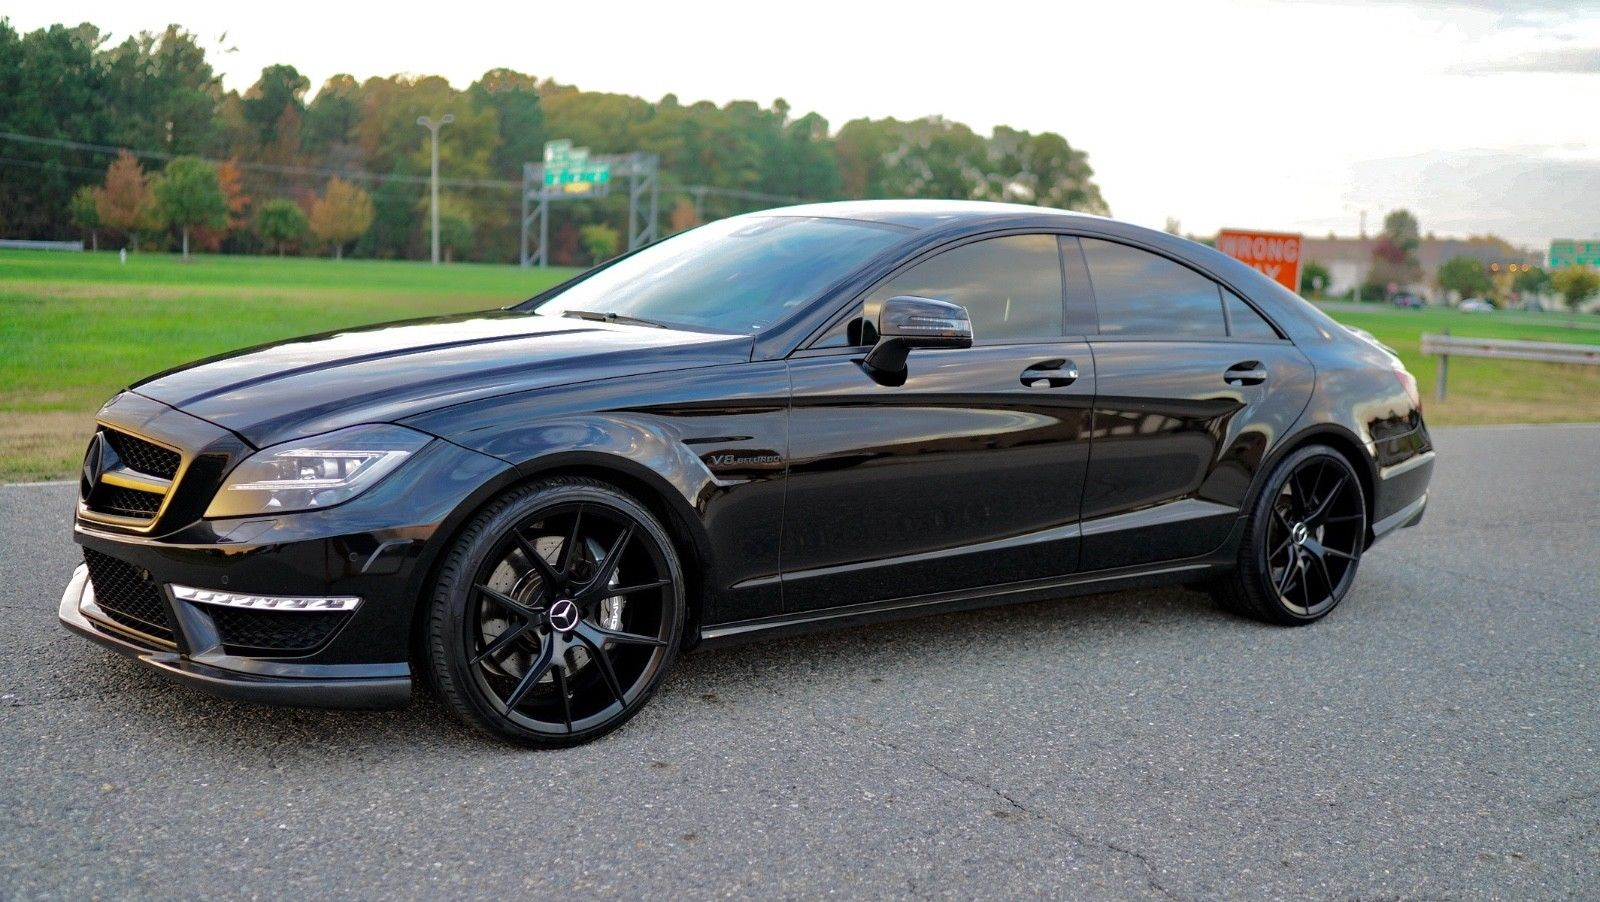 2012 mercedes benz w218 cls63 amg on r22 black wheels for Amg wheels for mercedes benz